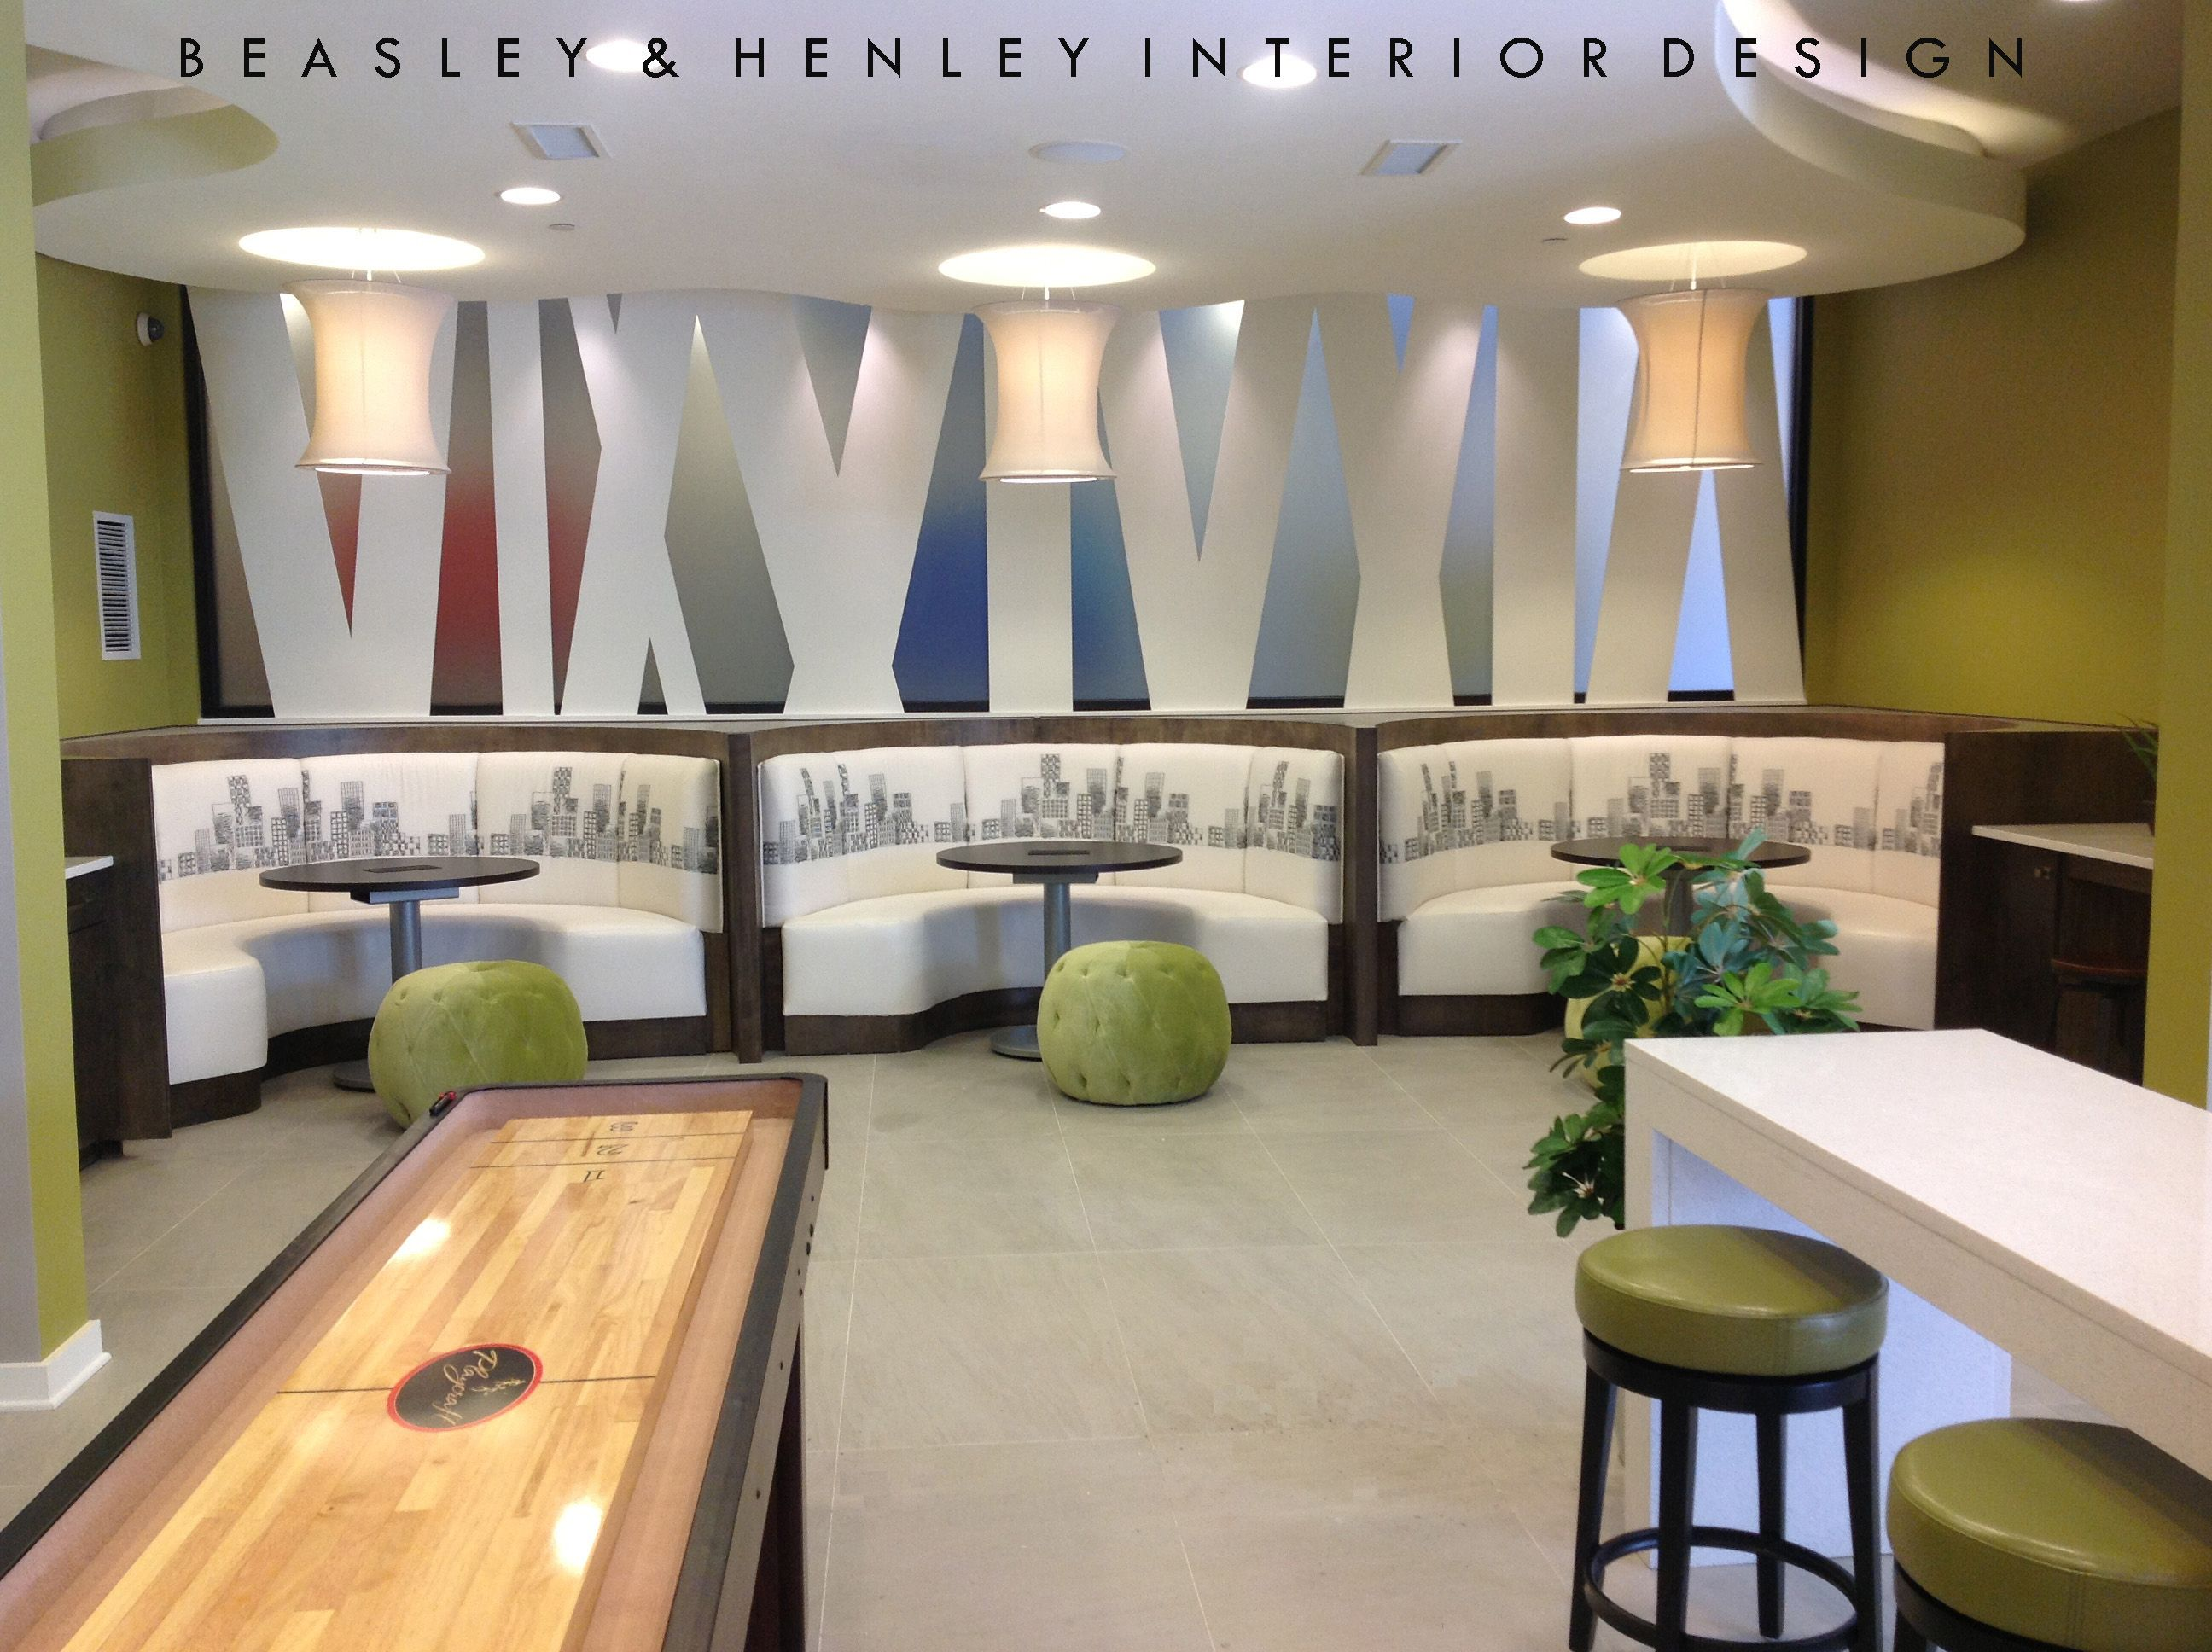 Cyber Cafe With Curved Benches Custom Internet Tables And Side Seating That Is Mobile For